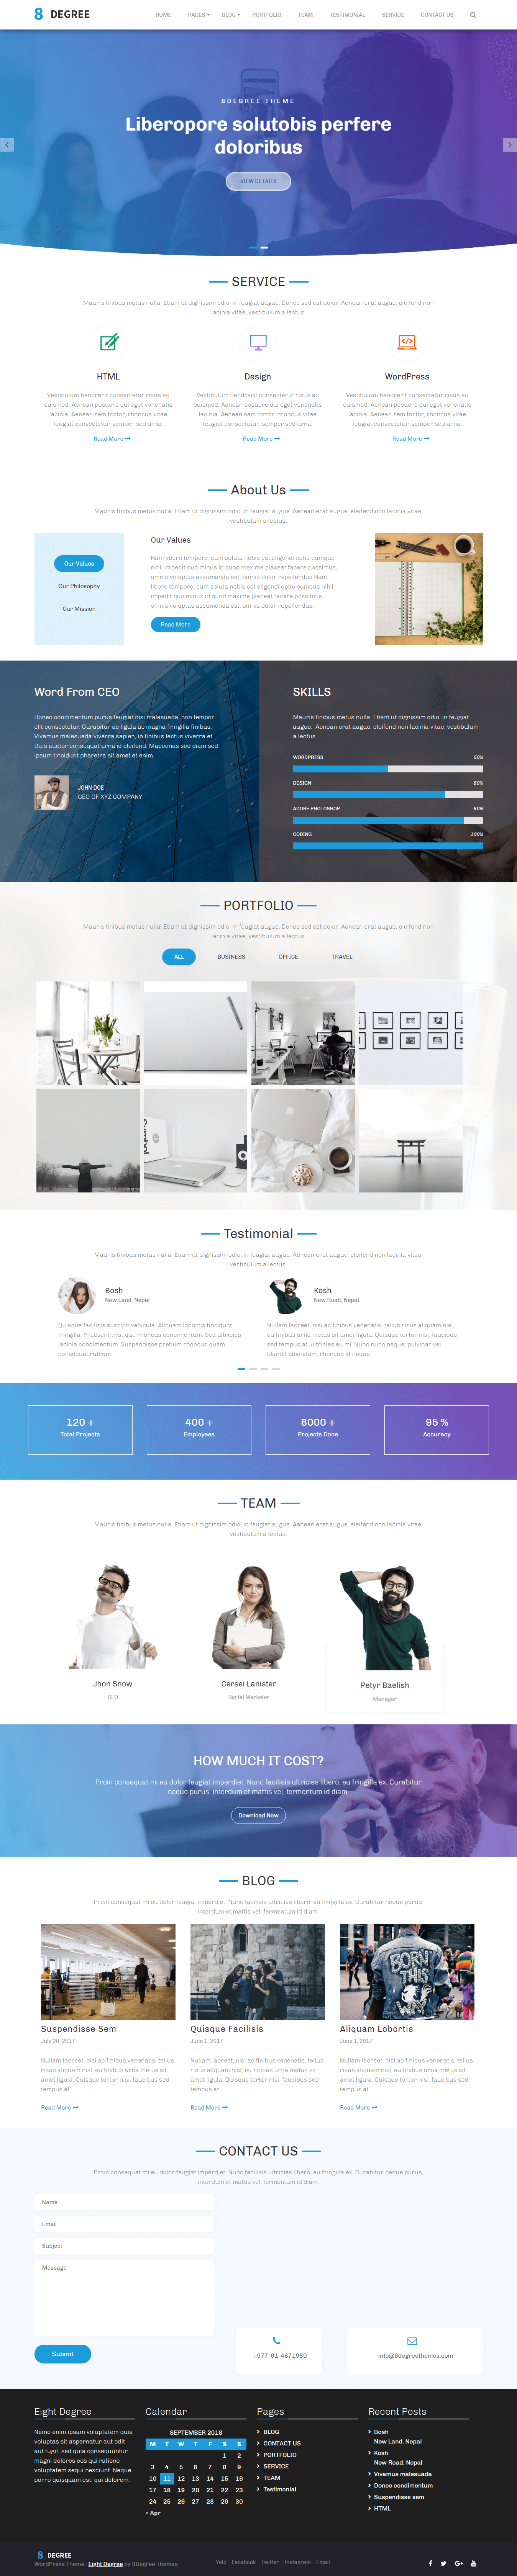 10 Best Free Agency Wordpress Themes And Templates